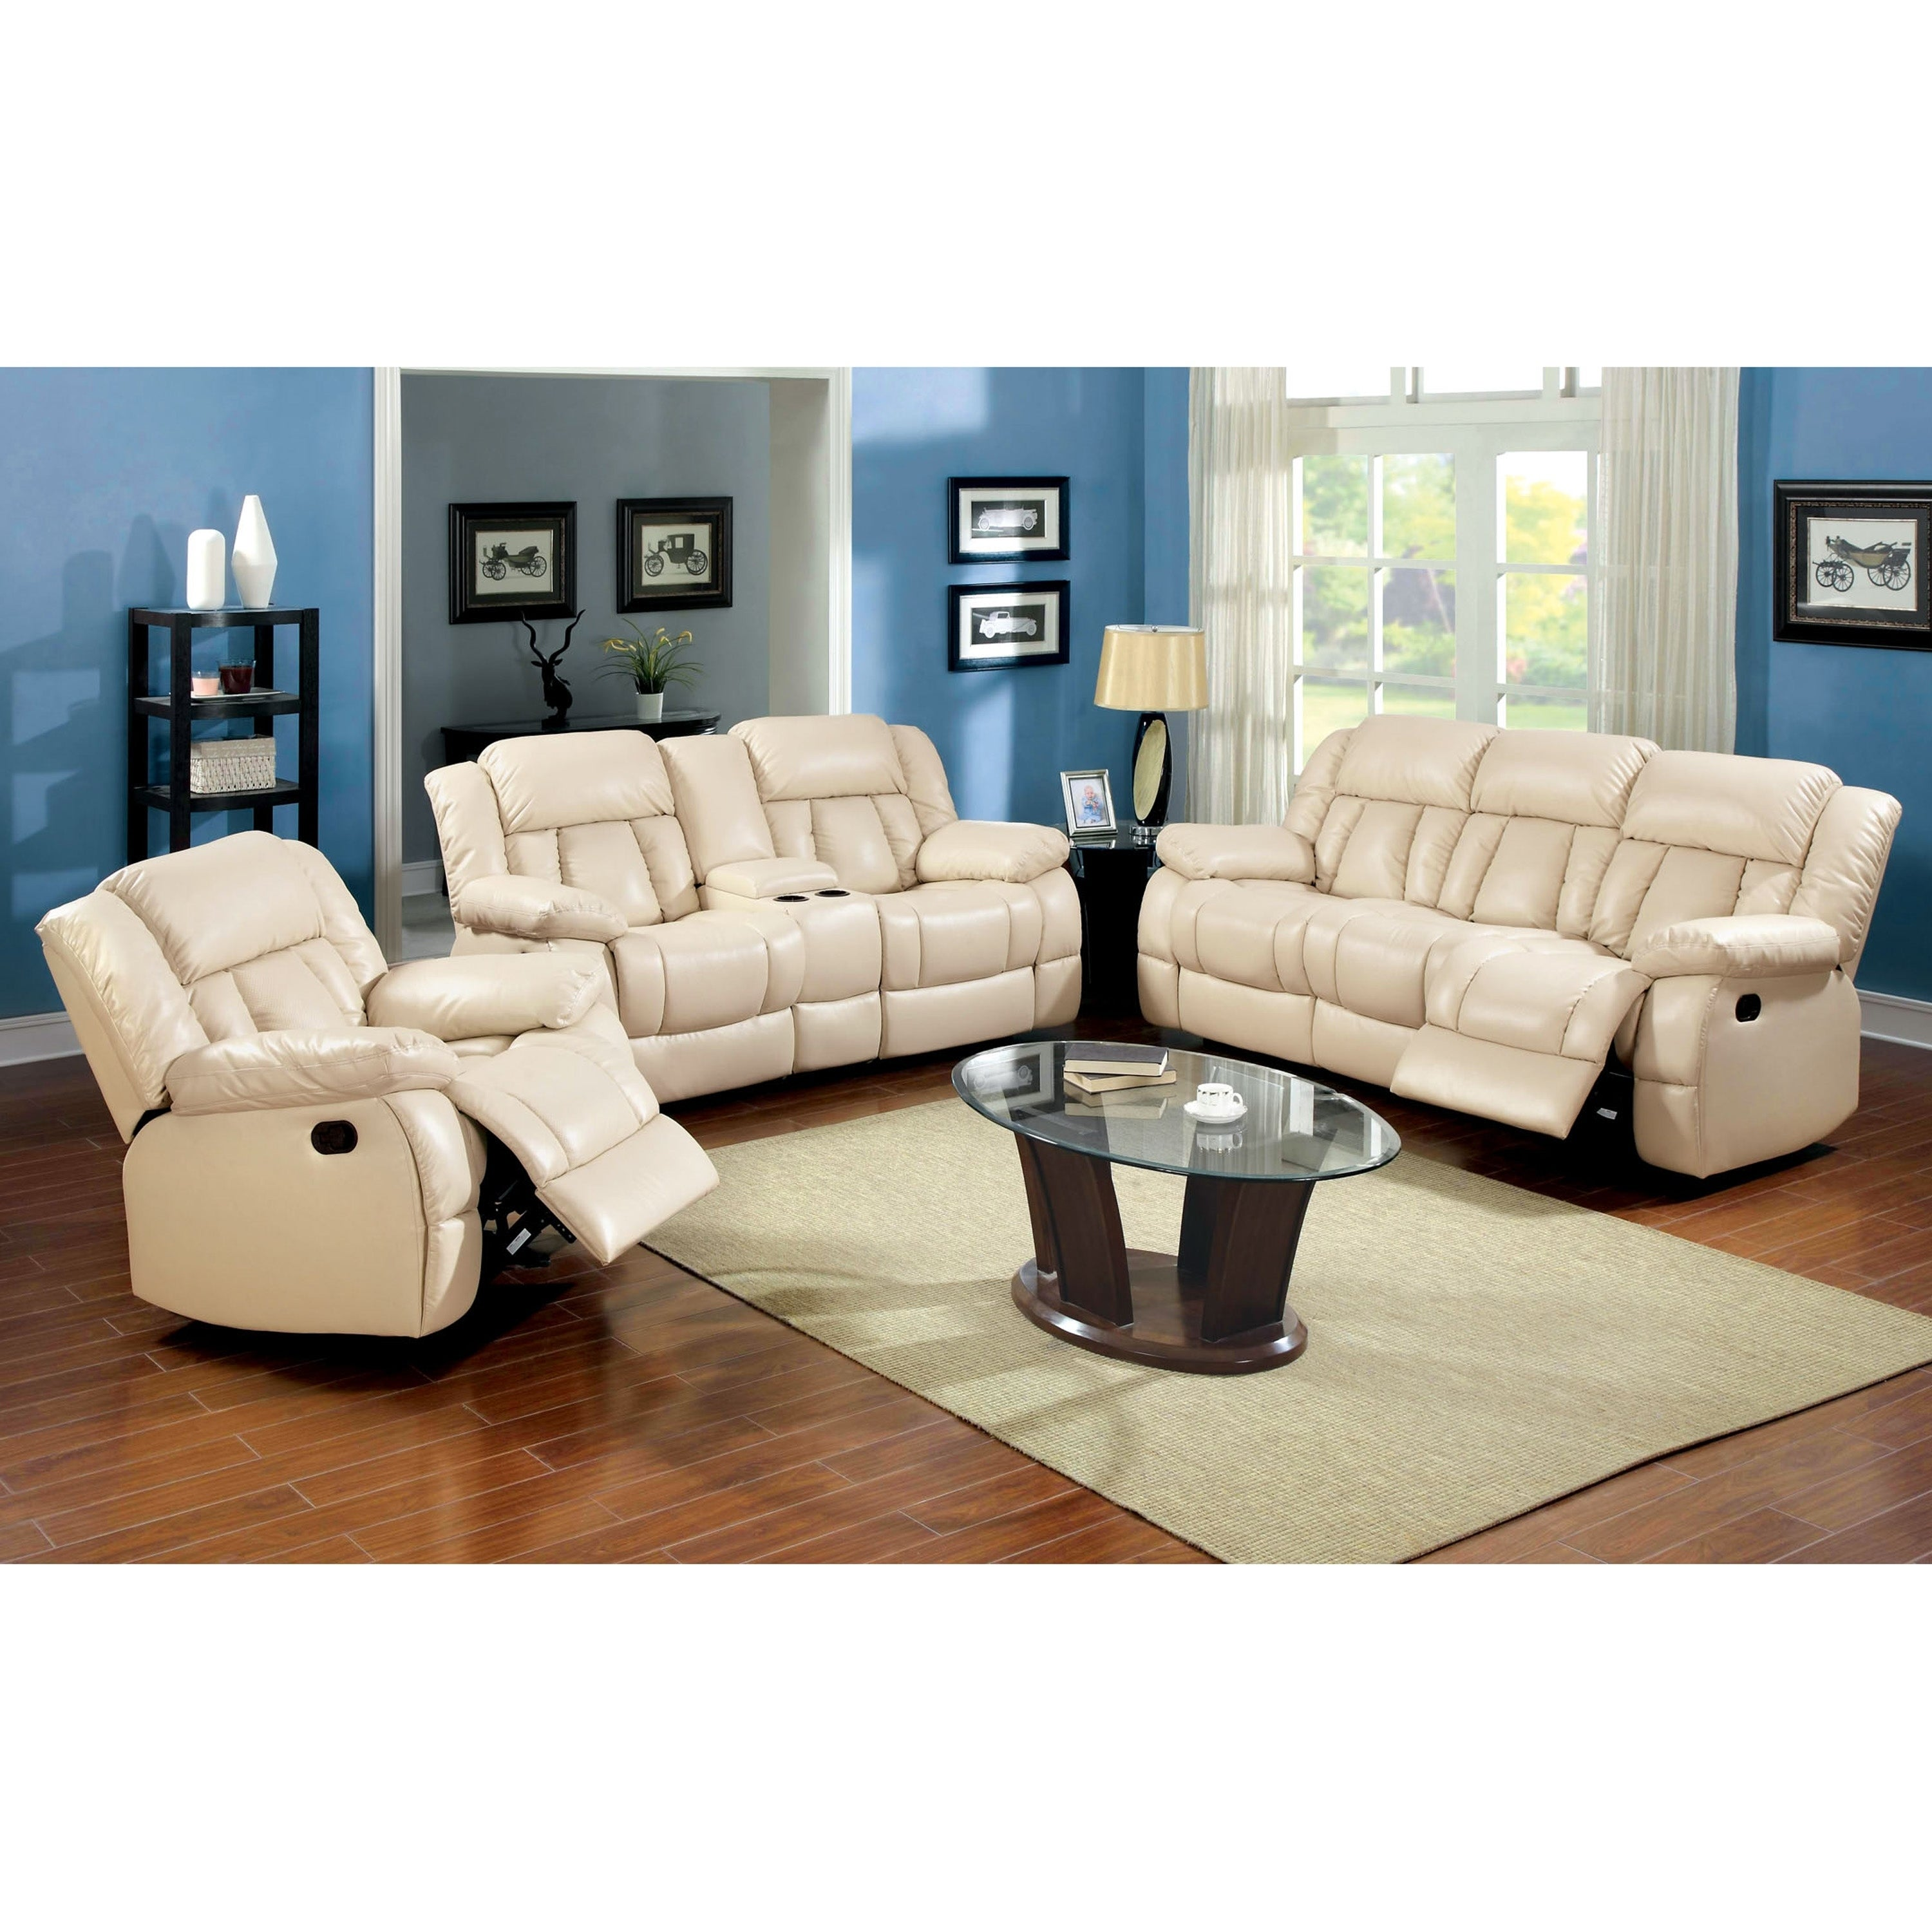 Admirable Buy Recliners Living Room Furniture Sets Online At Overstock Ncnpc Chair Design For Home Ncnpcorg